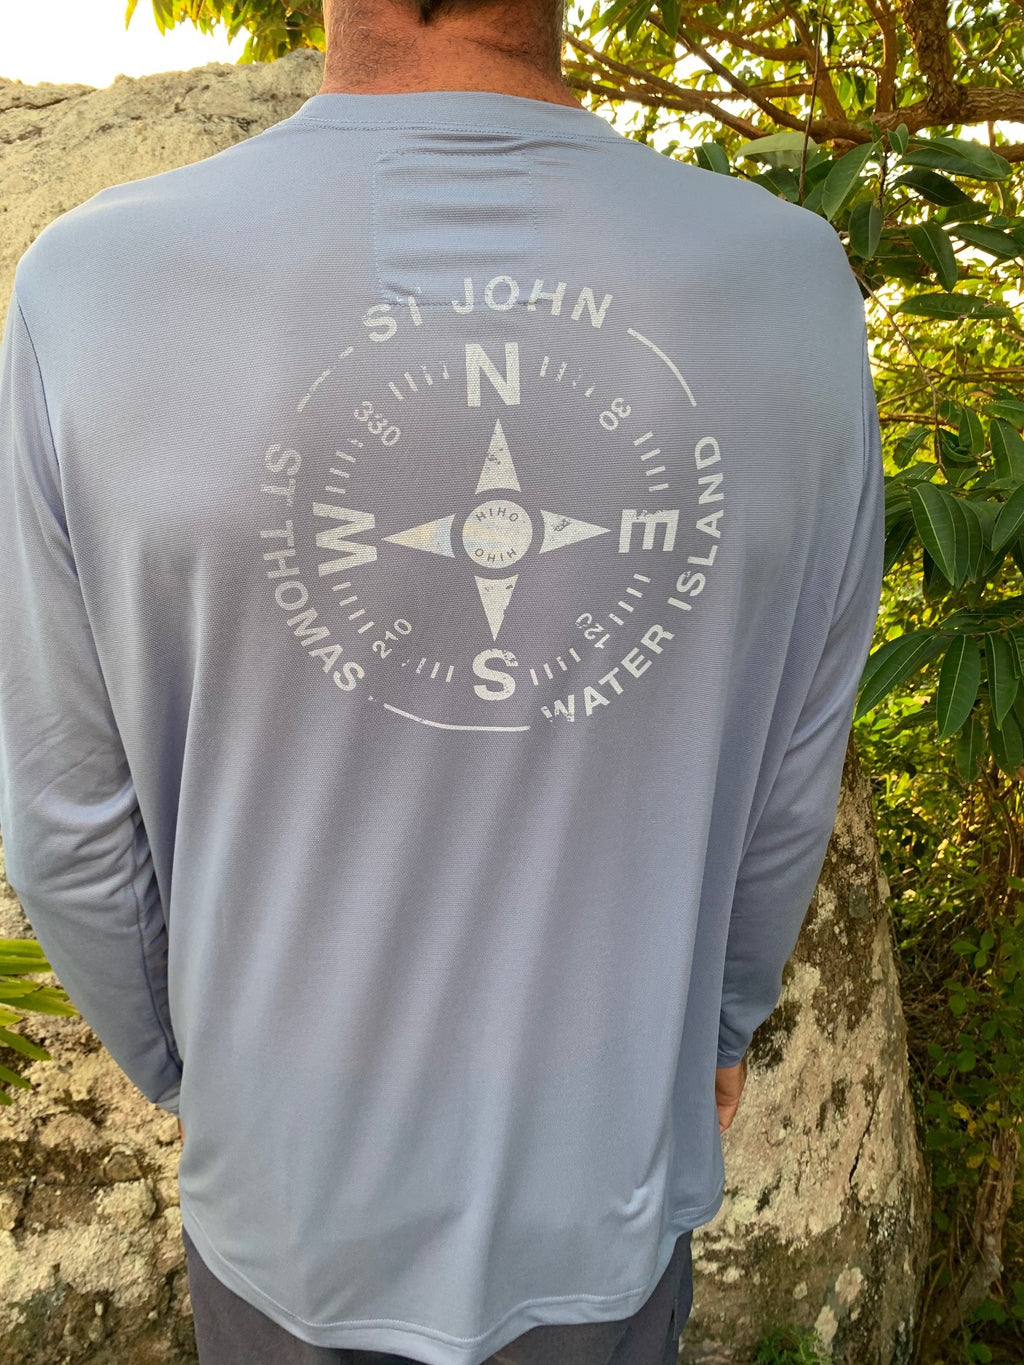 comfortable and fast drying shirt offering SPF 50 protection